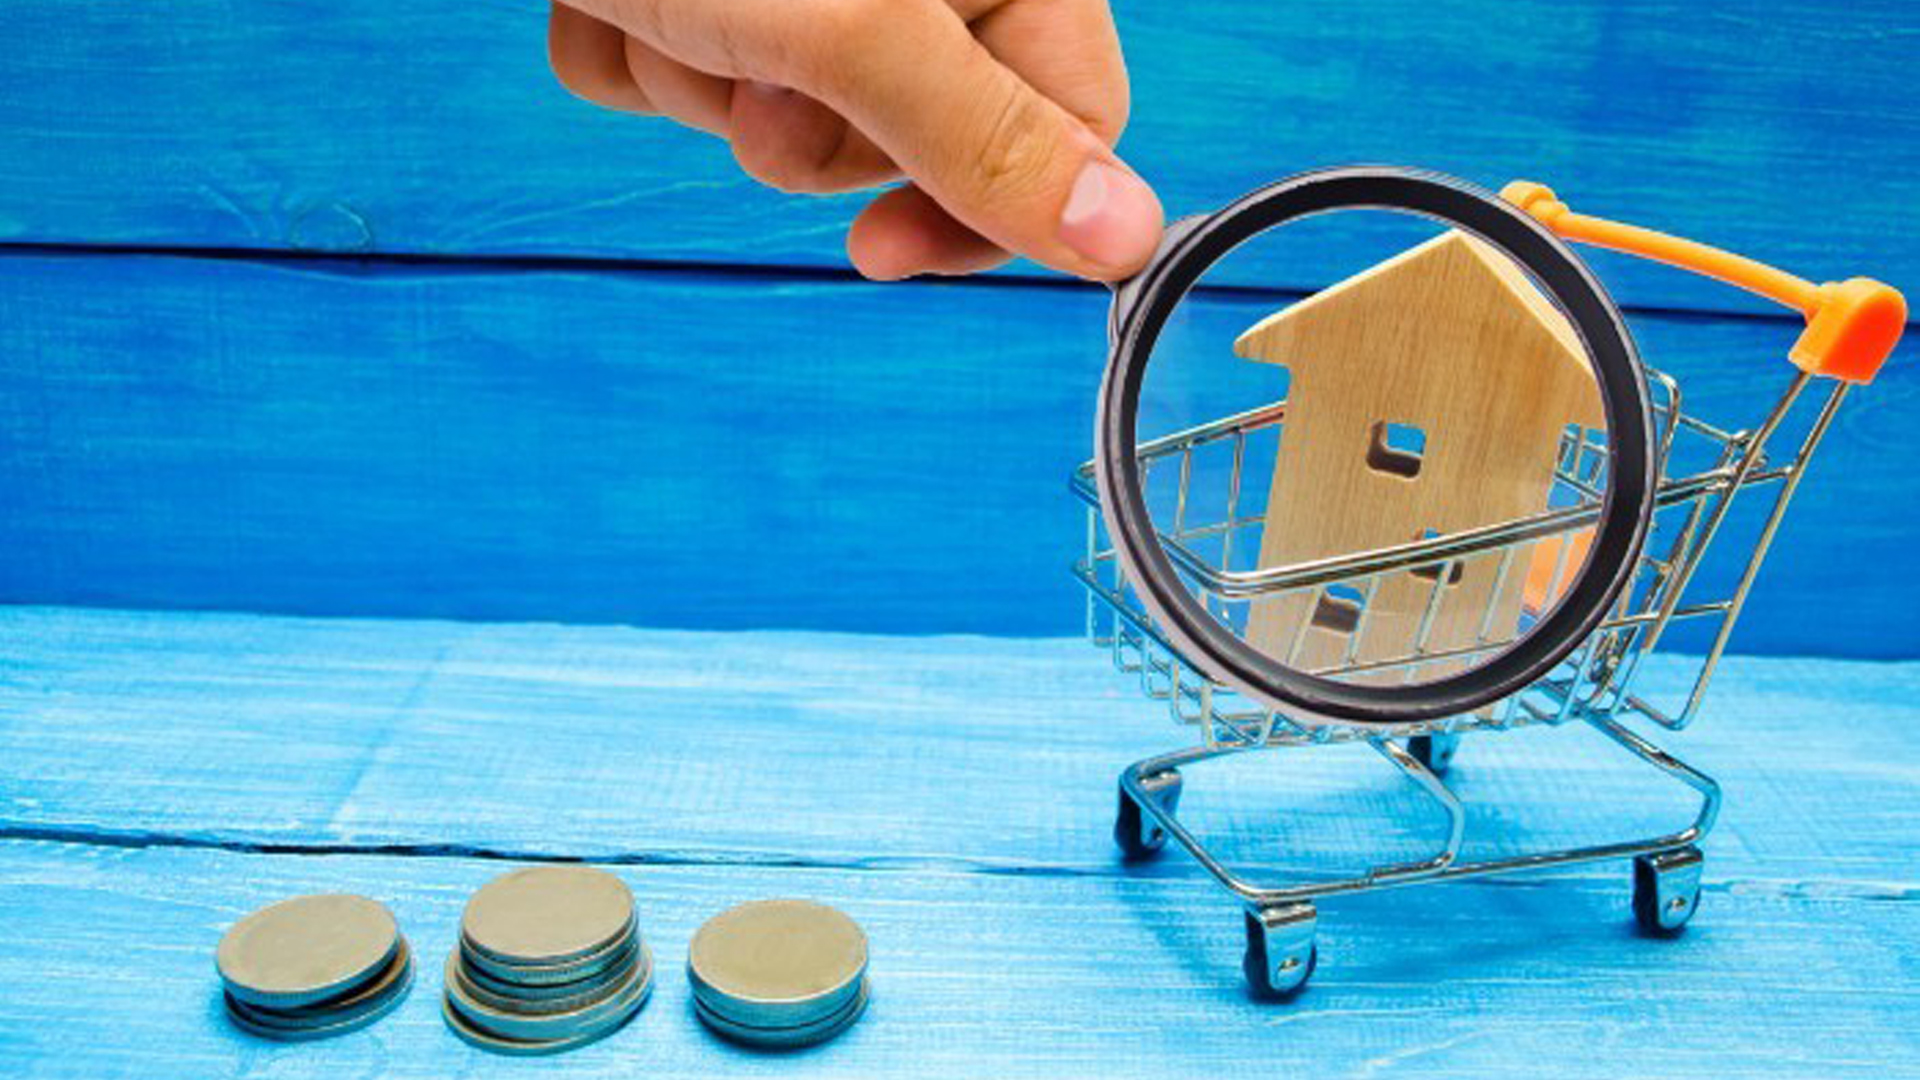 THE RISKS INVOLVED IN PURCHASING A DISTRESSED PROPERTY